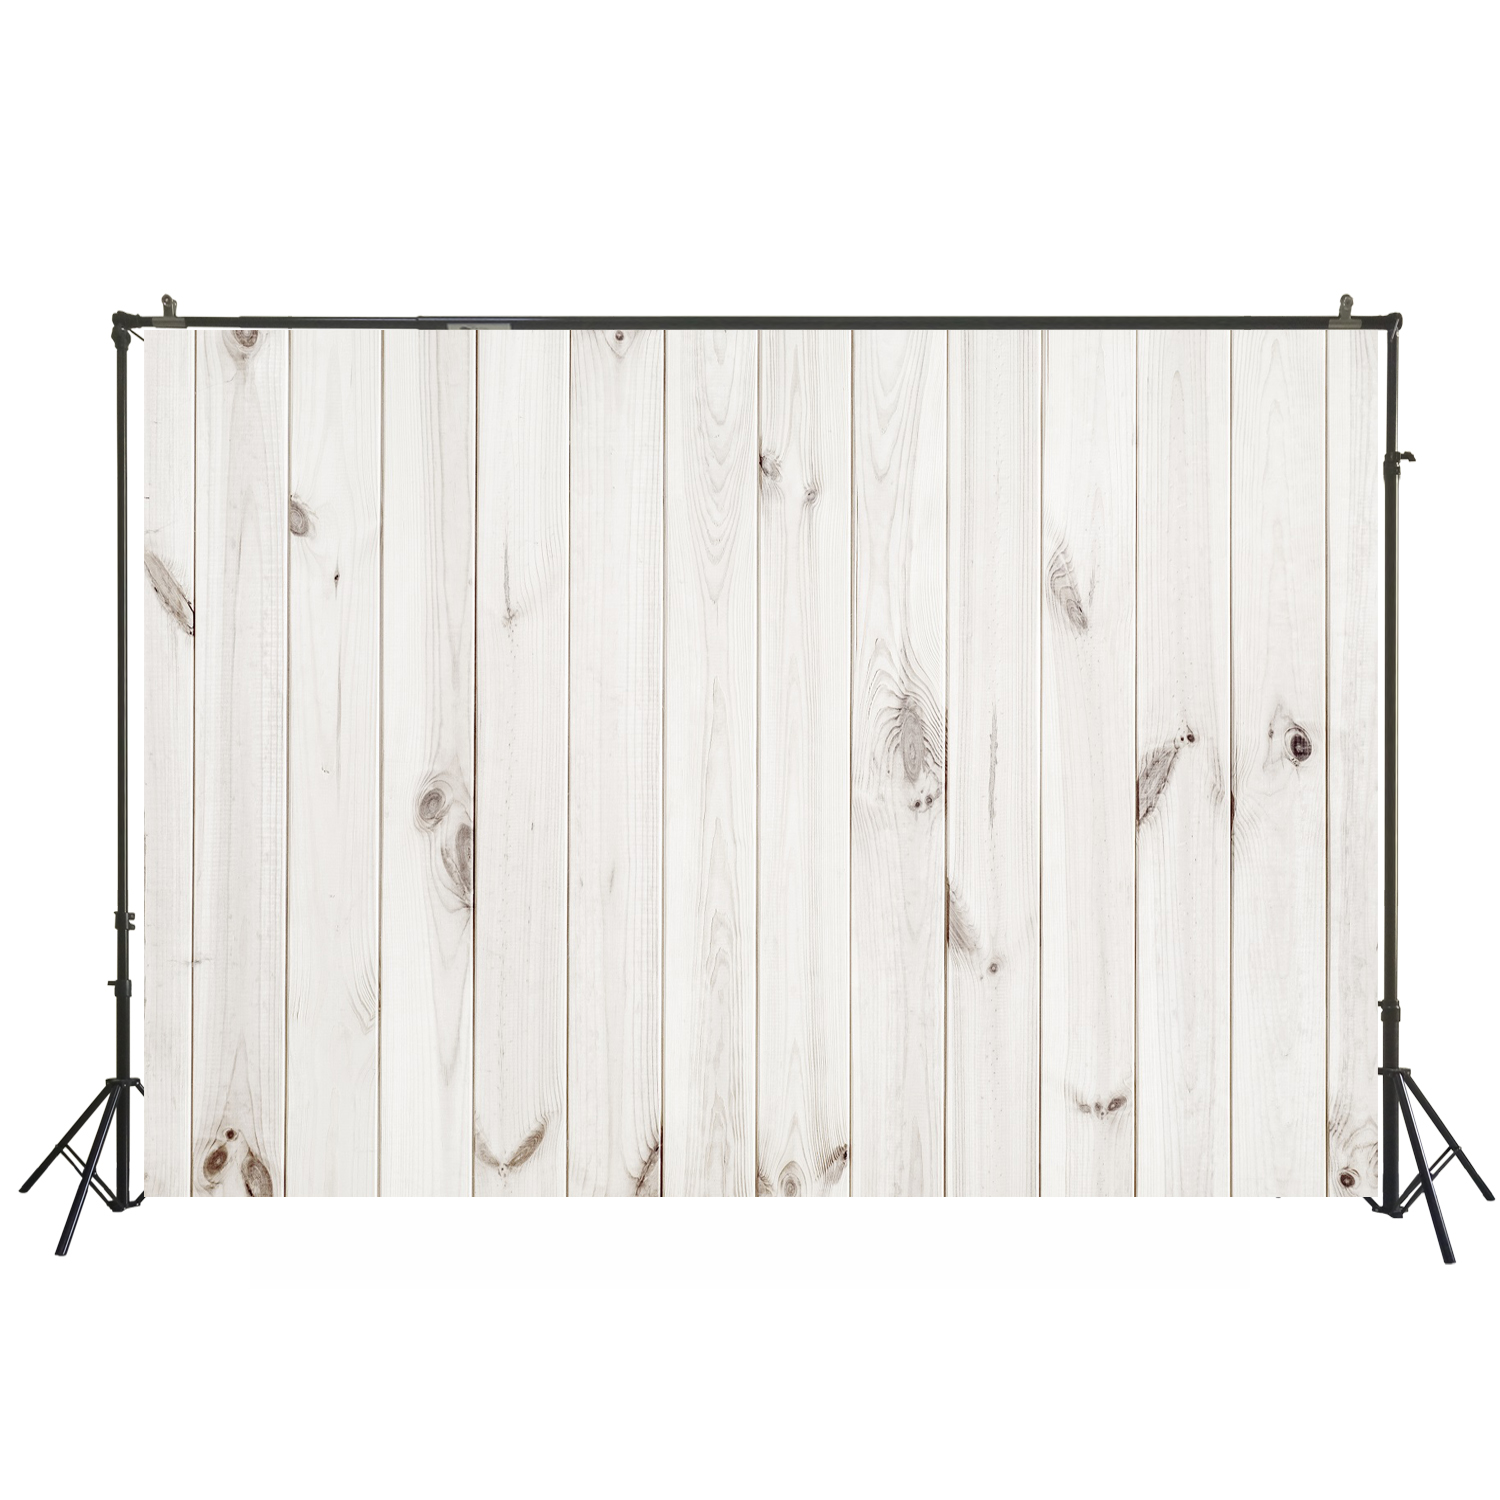 HUAYI Photography Backdrop Background for Photo Studio Newborn Photo Props Vinyl Wood Floor Backdrops XT-3107 kidniu scenery photography backdrops trees lake photo props wallpaper winter snow vinyl background for studio 9x5ft win1403